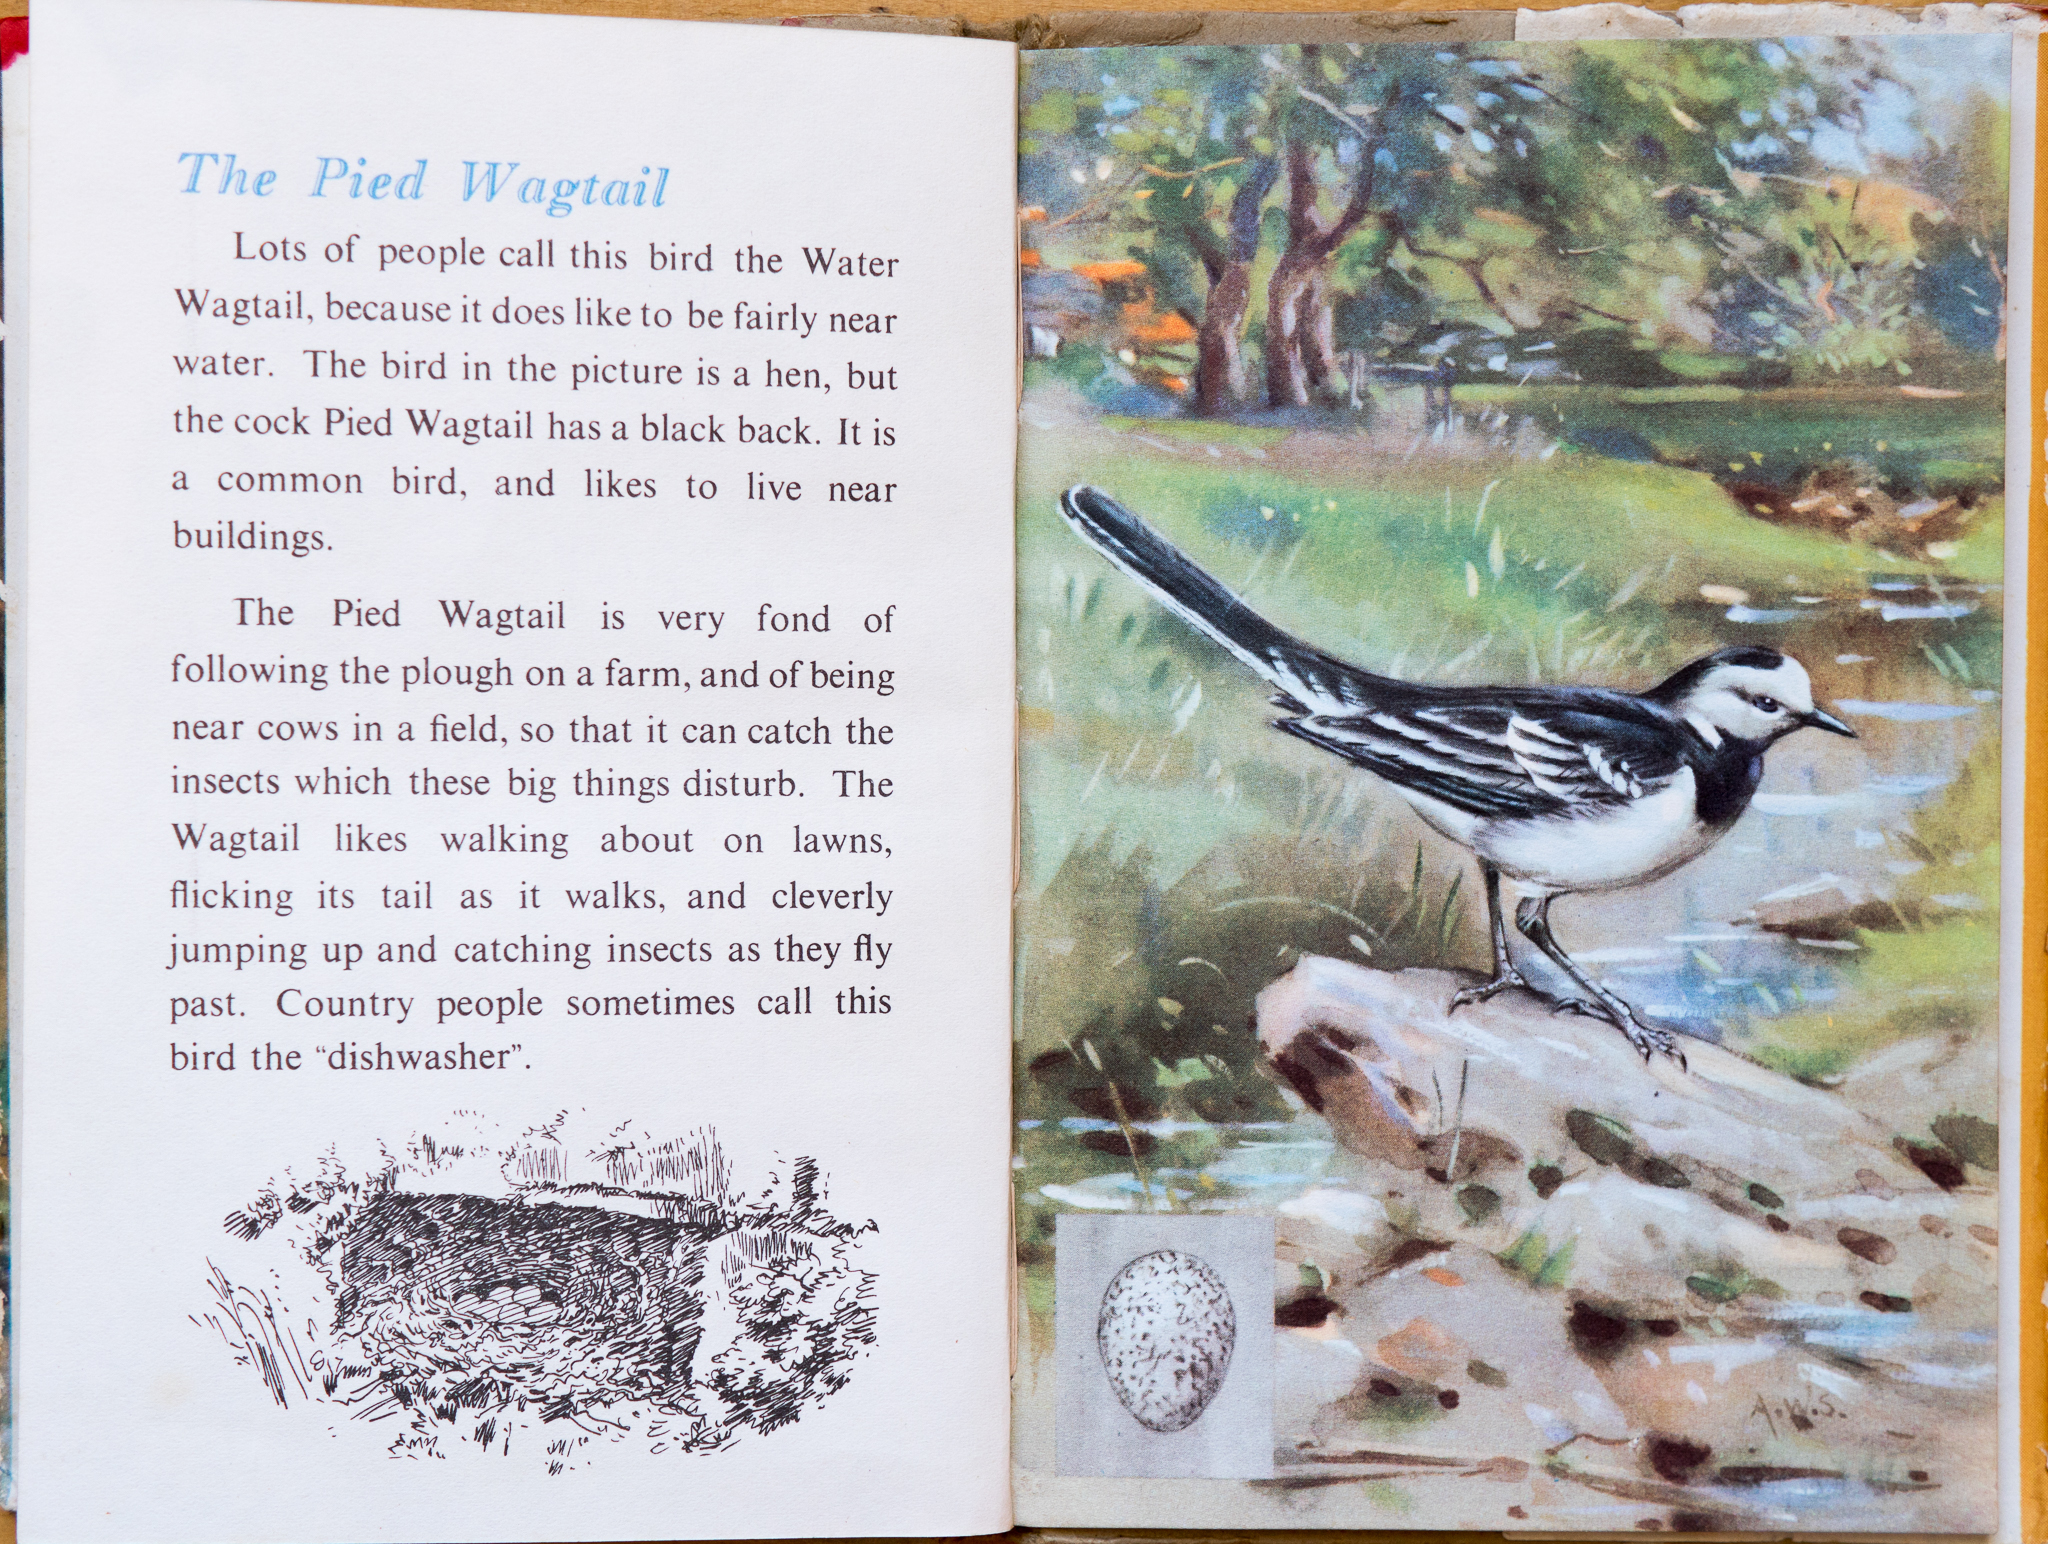 The Pied Wagtail - Ladybird Book of British Birds - The Hall of Einar